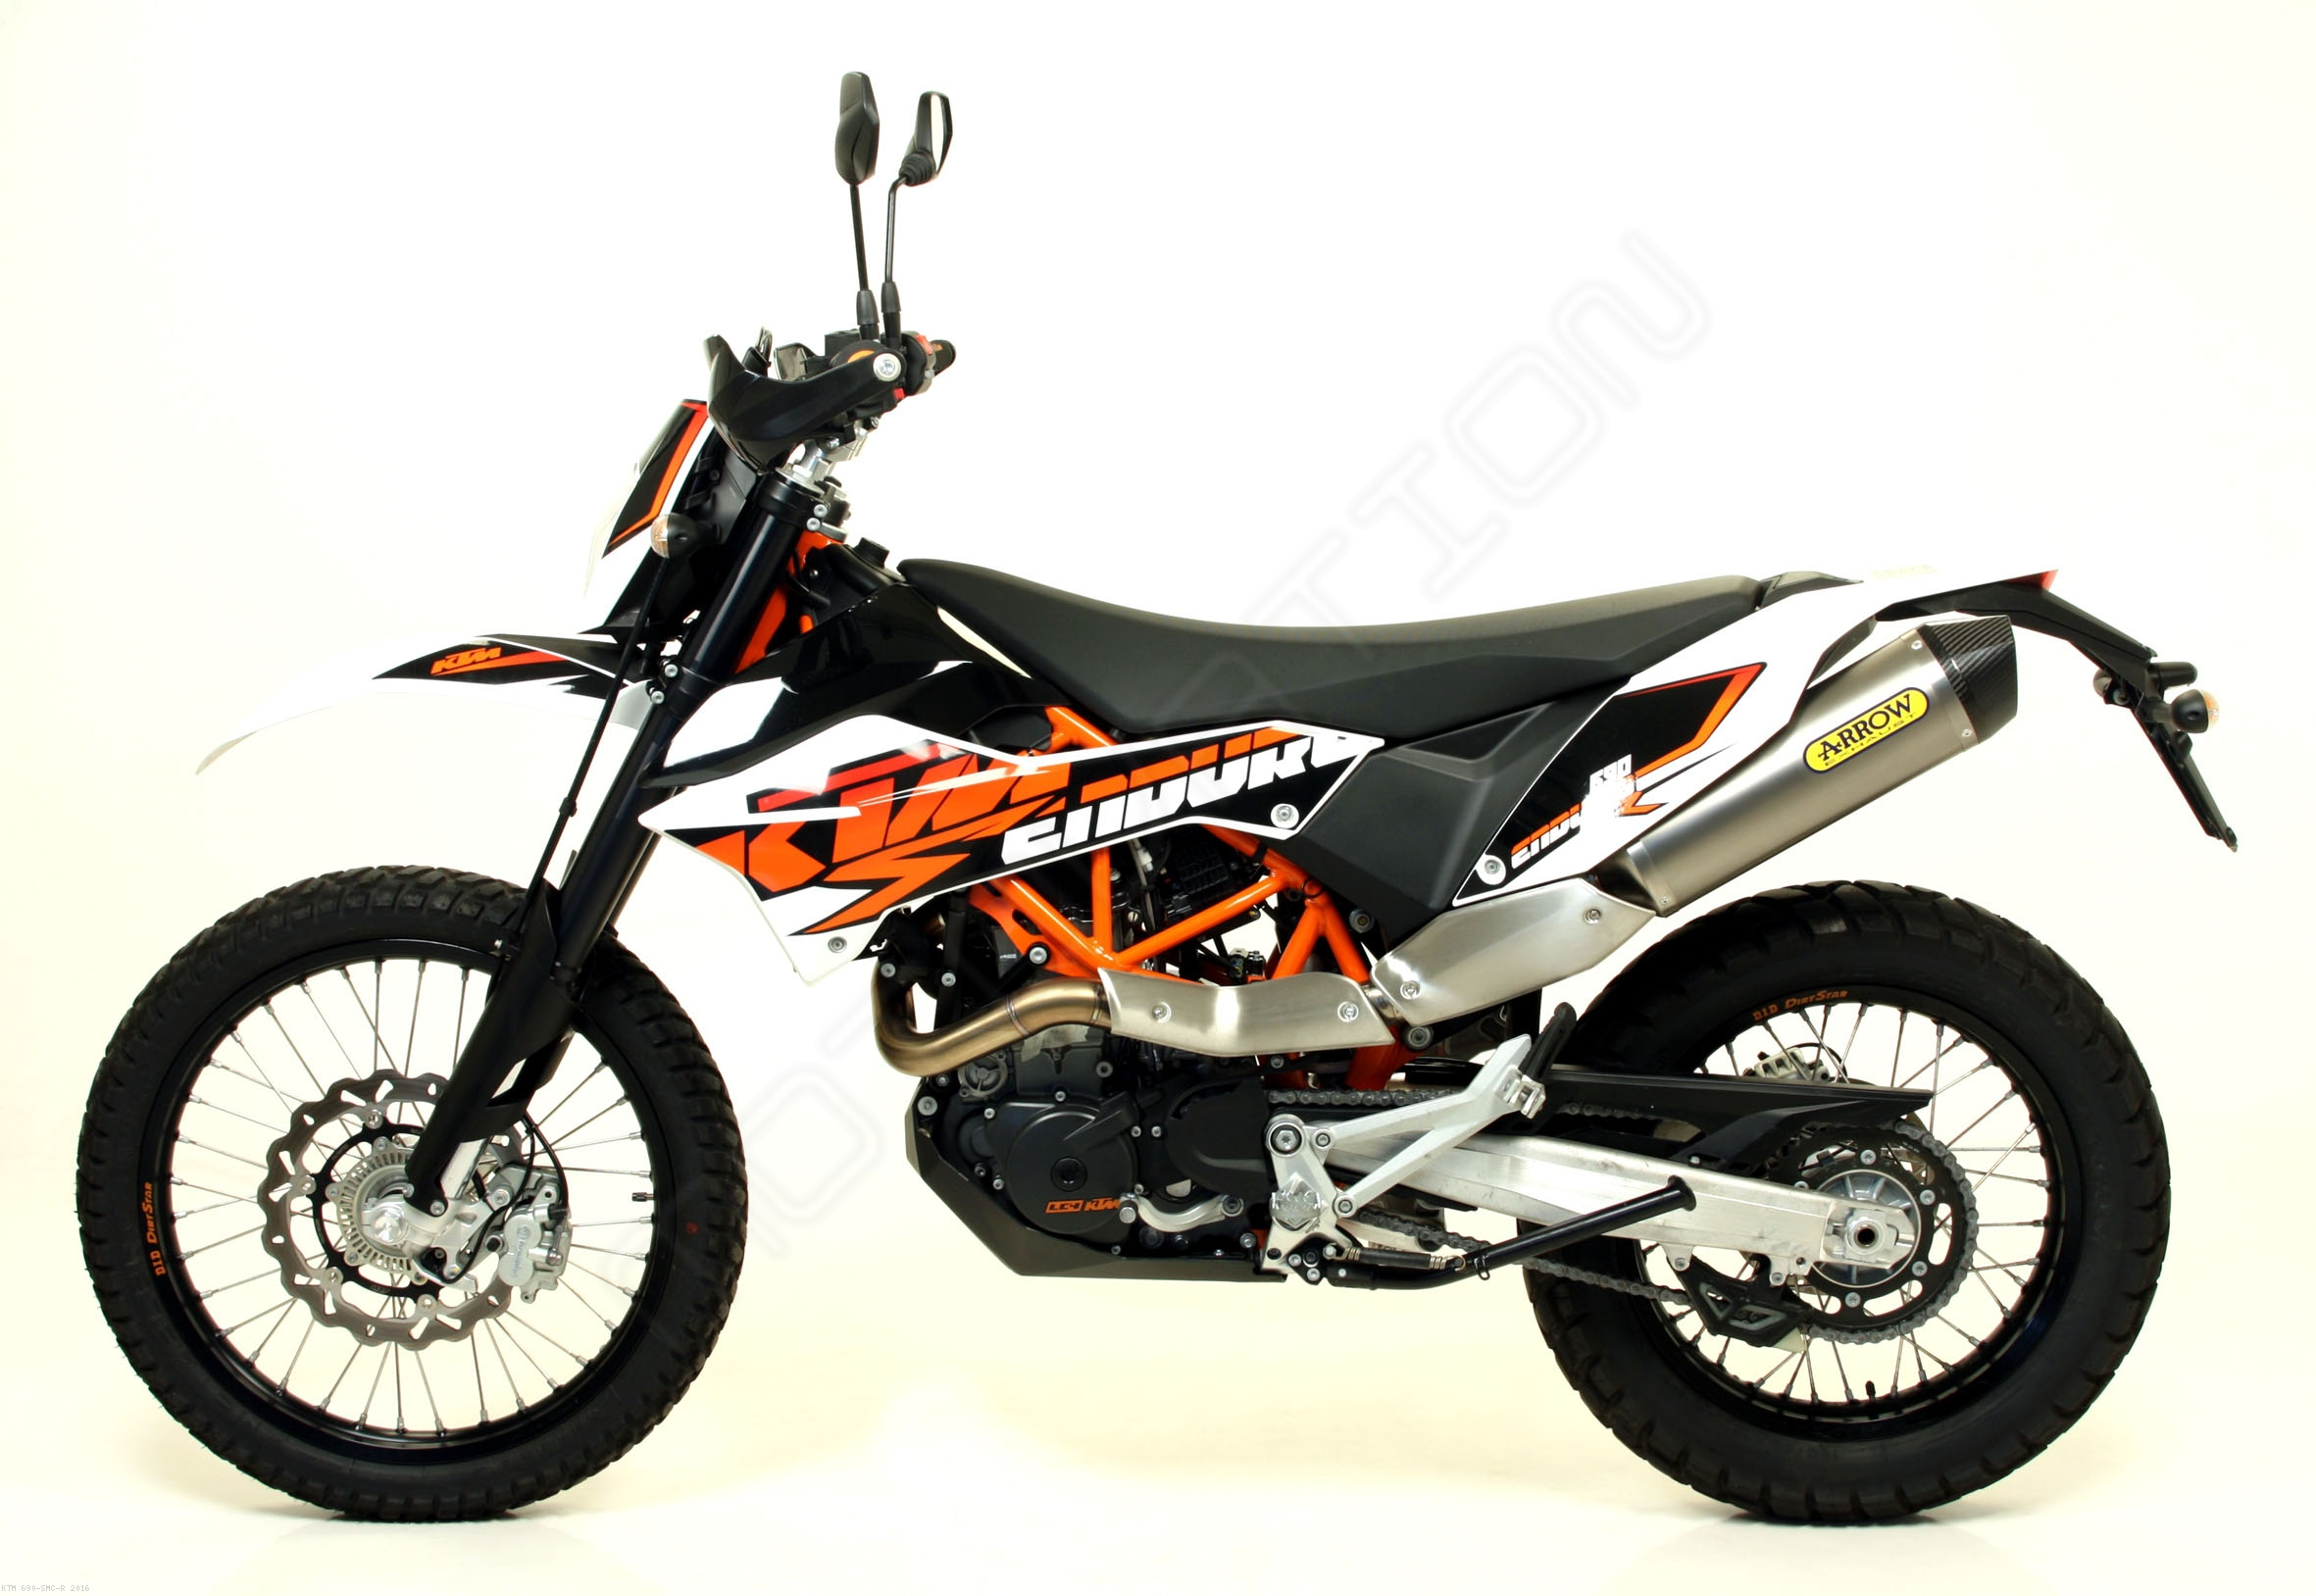 race tech exhaust by arrow ktm 690 smc r 2016 72618 72119pd. Black Bedroom Furniture Sets. Home Design Ideas